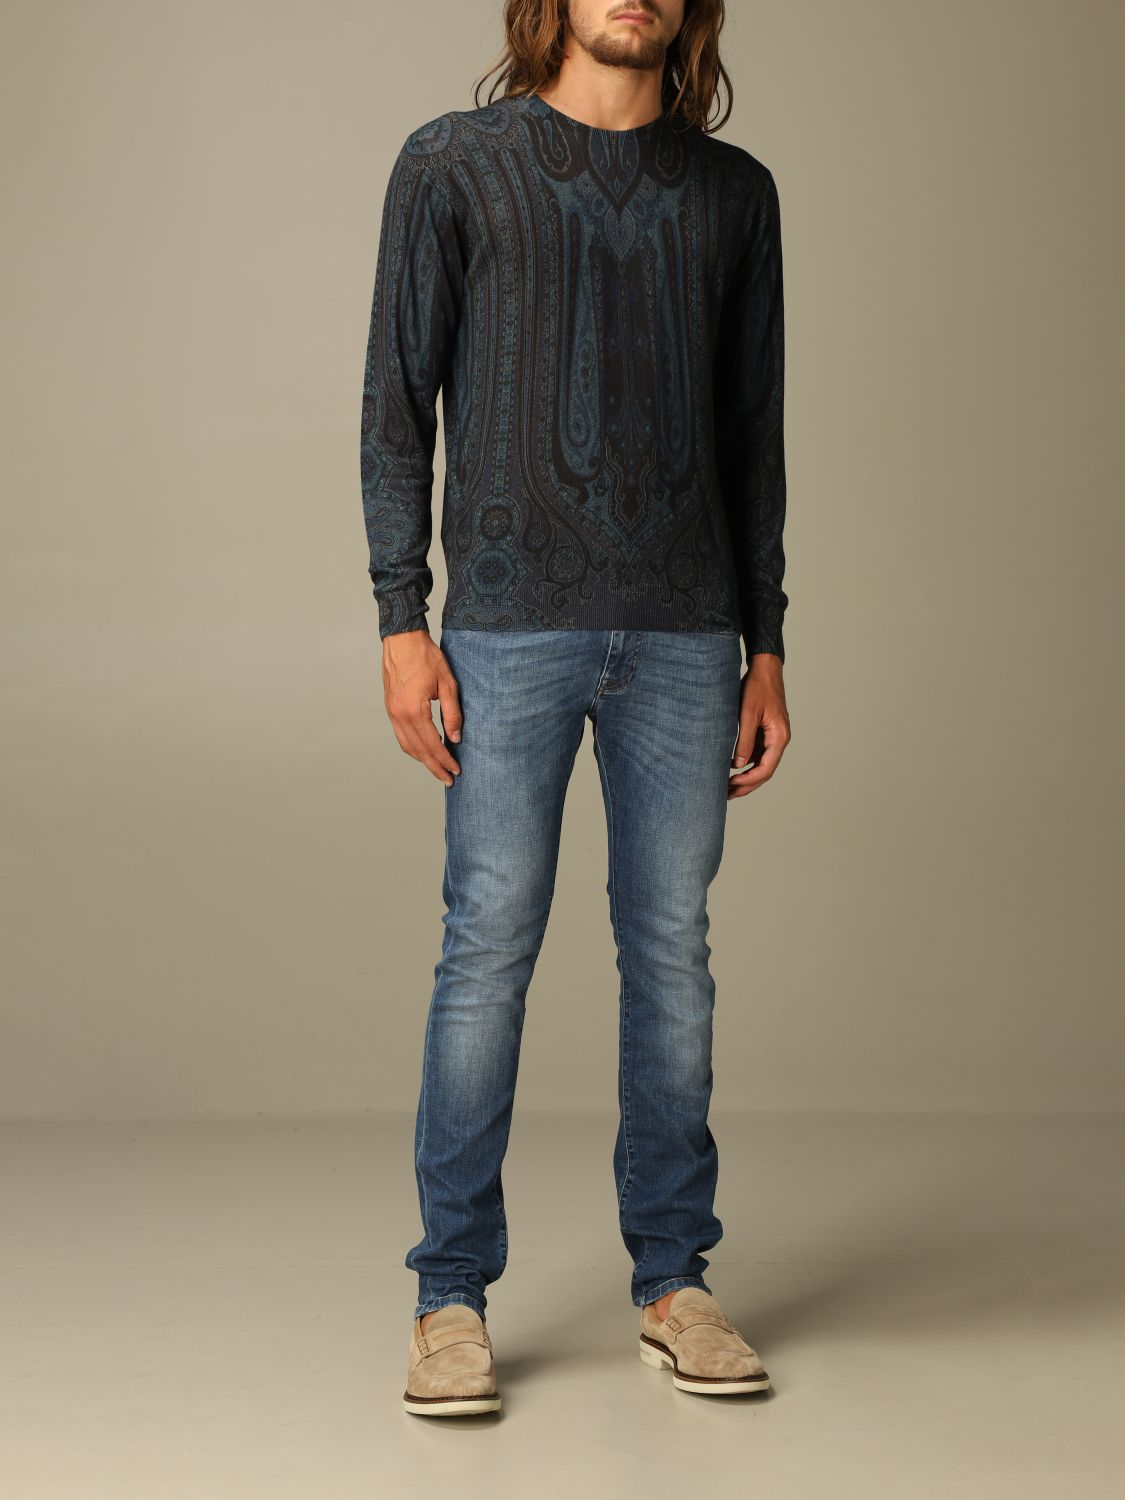 Sweater Etro: Etro sweater in silk and paisley chasmere blue 2